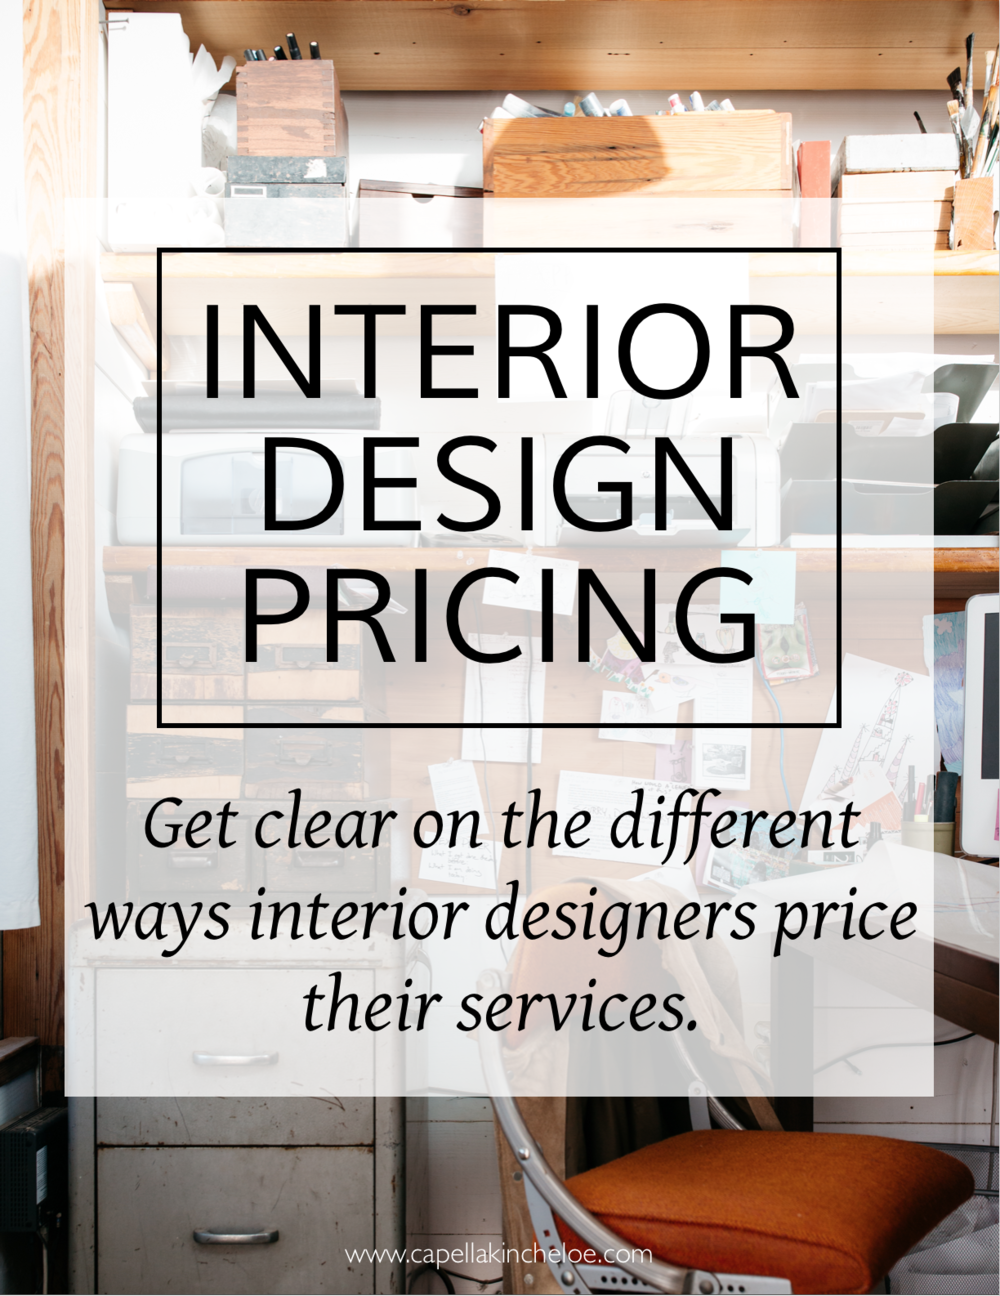 Interior Design Pricing Interior Design Institute Interior Design School Interior Design Business